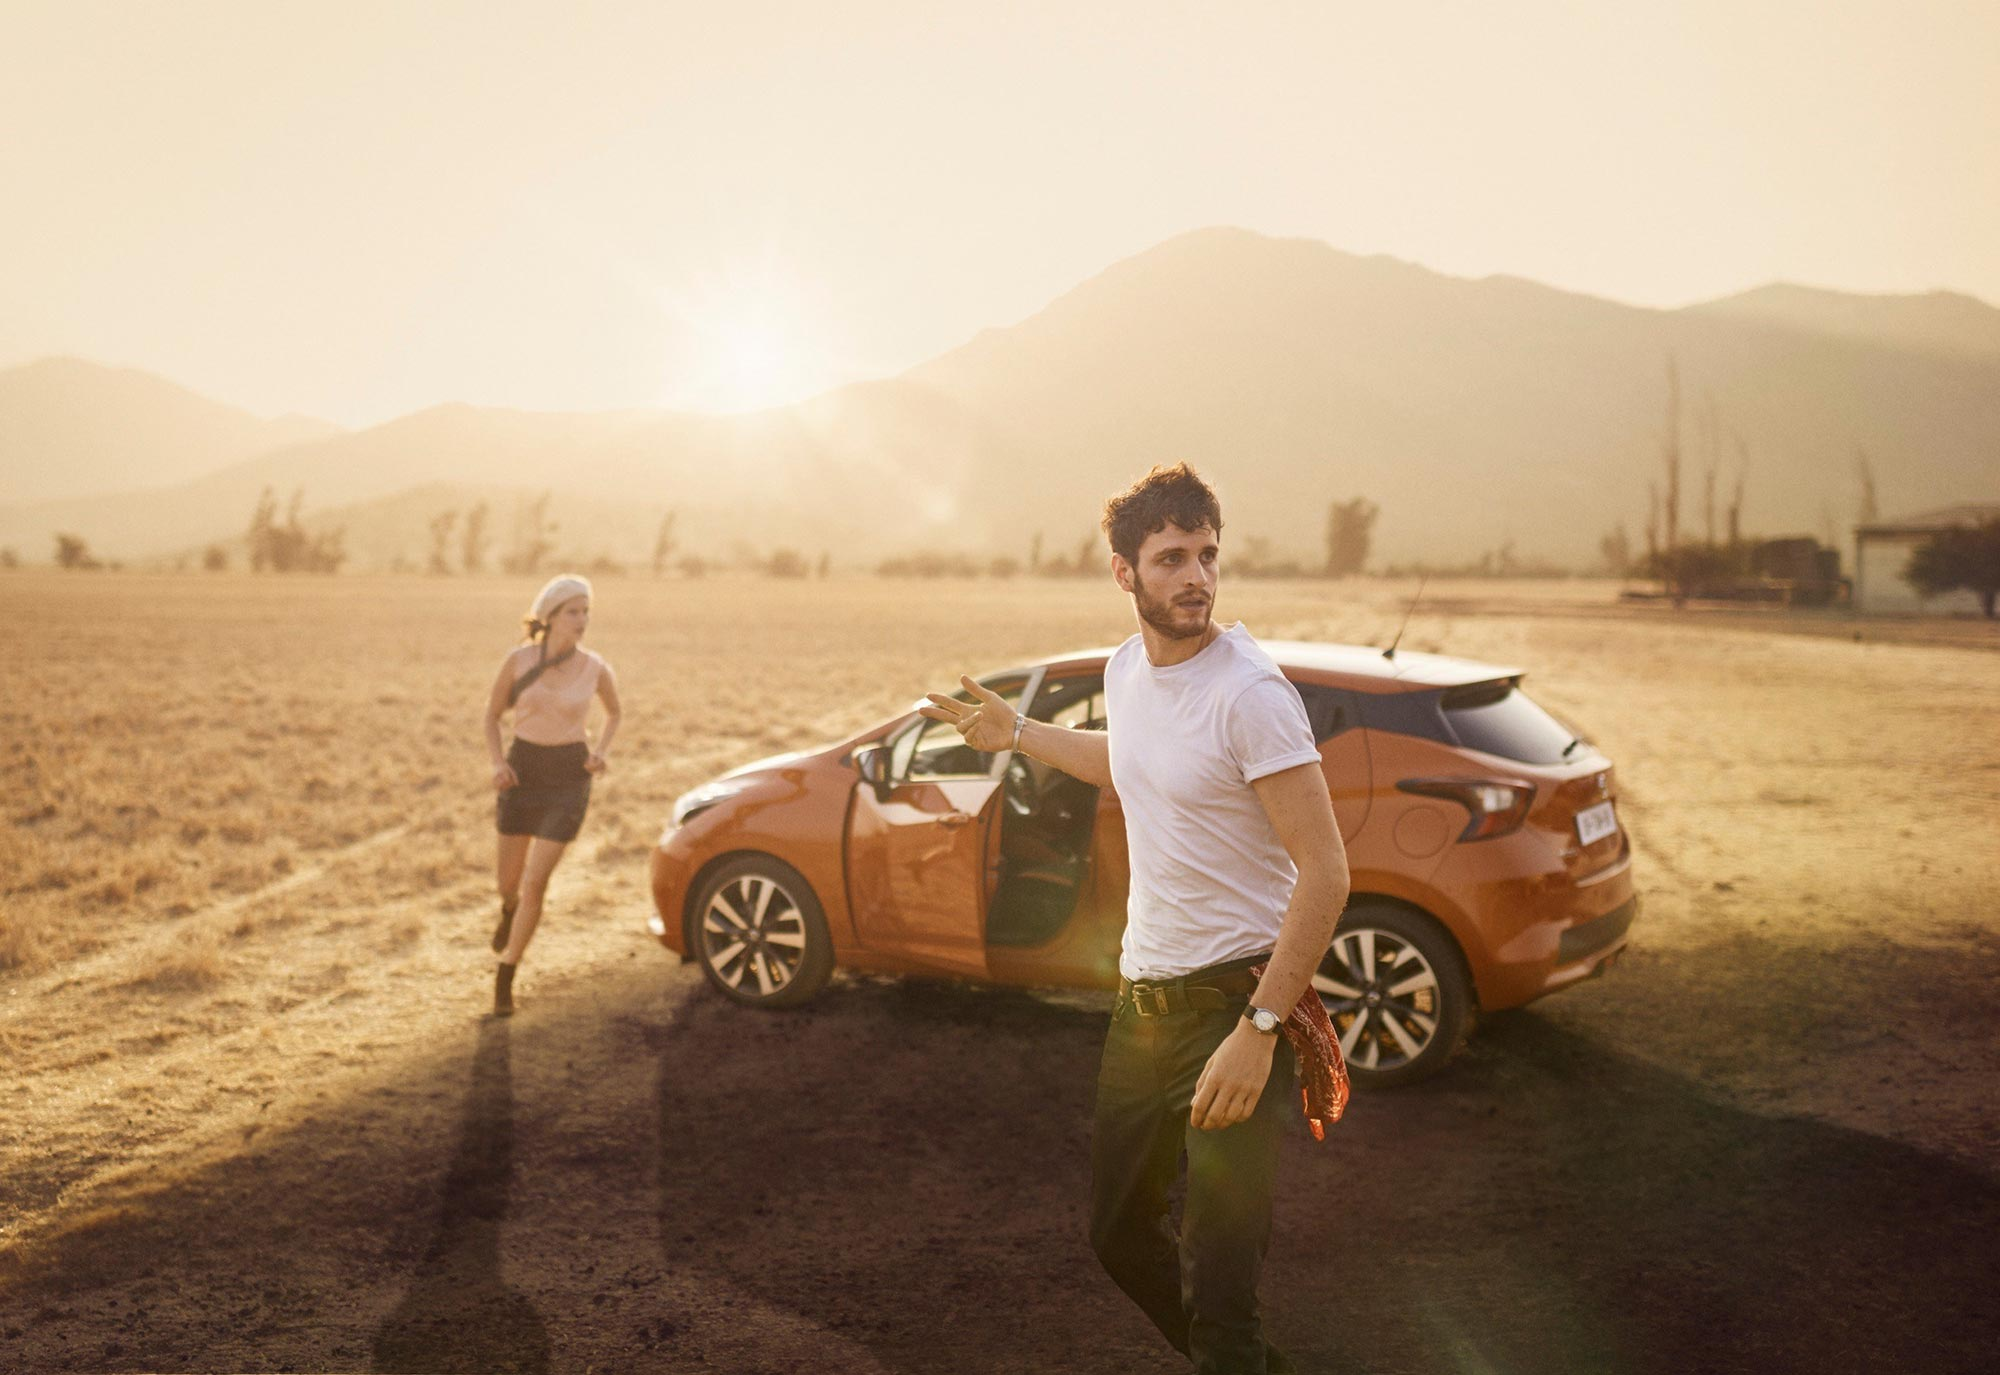 426186928_Meet_the_Accomplice_all_new_Nissan_Micra_marketing_campaign_goes_live.jpg